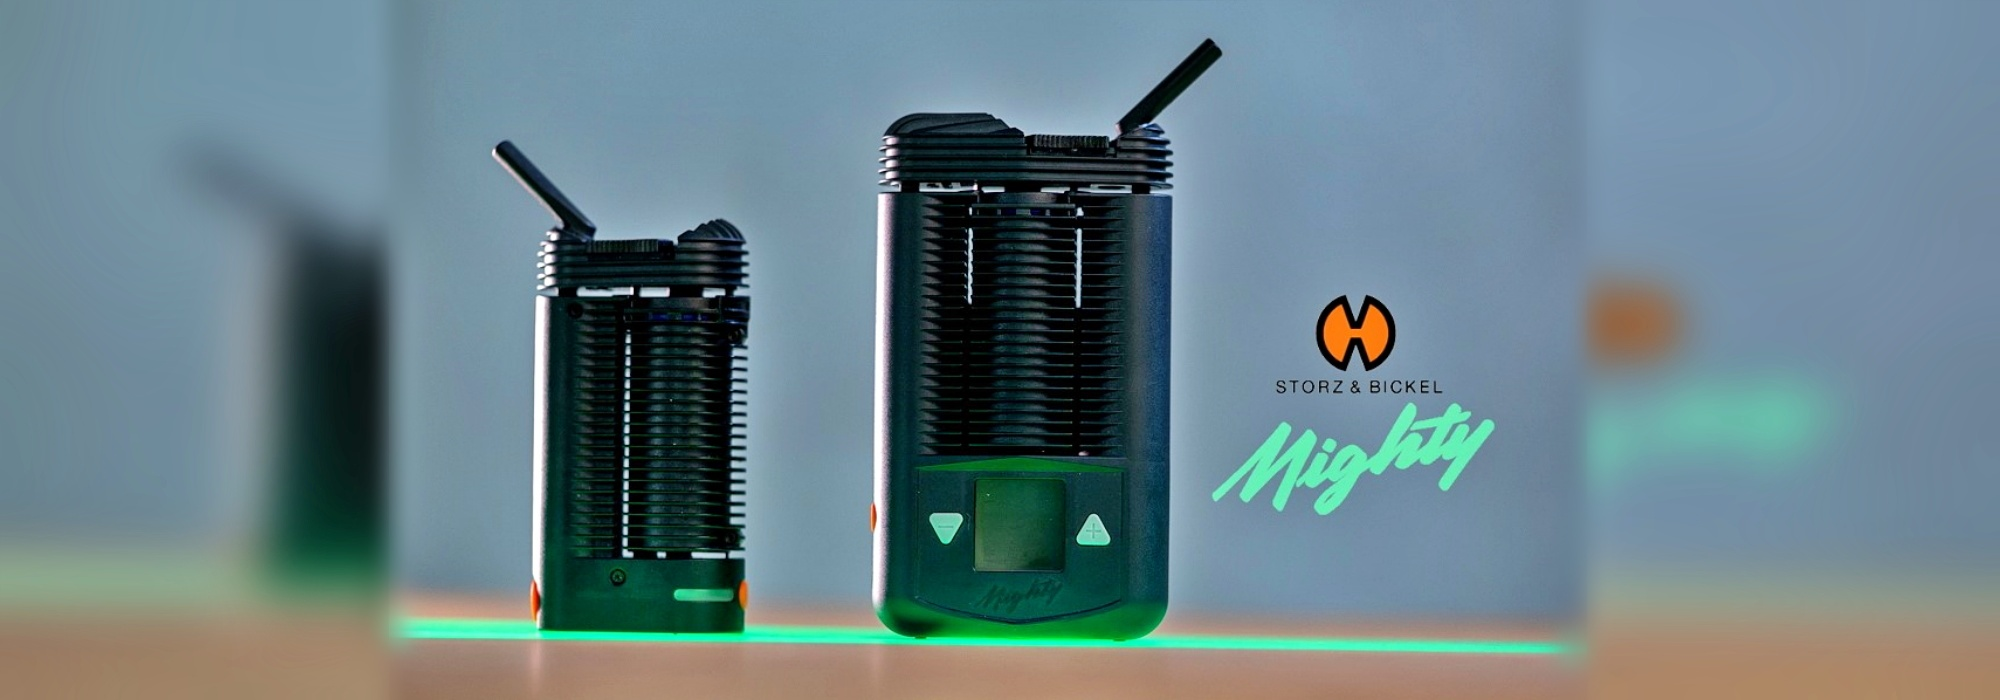 Storz & Bickel MIGHTY Vaporizer